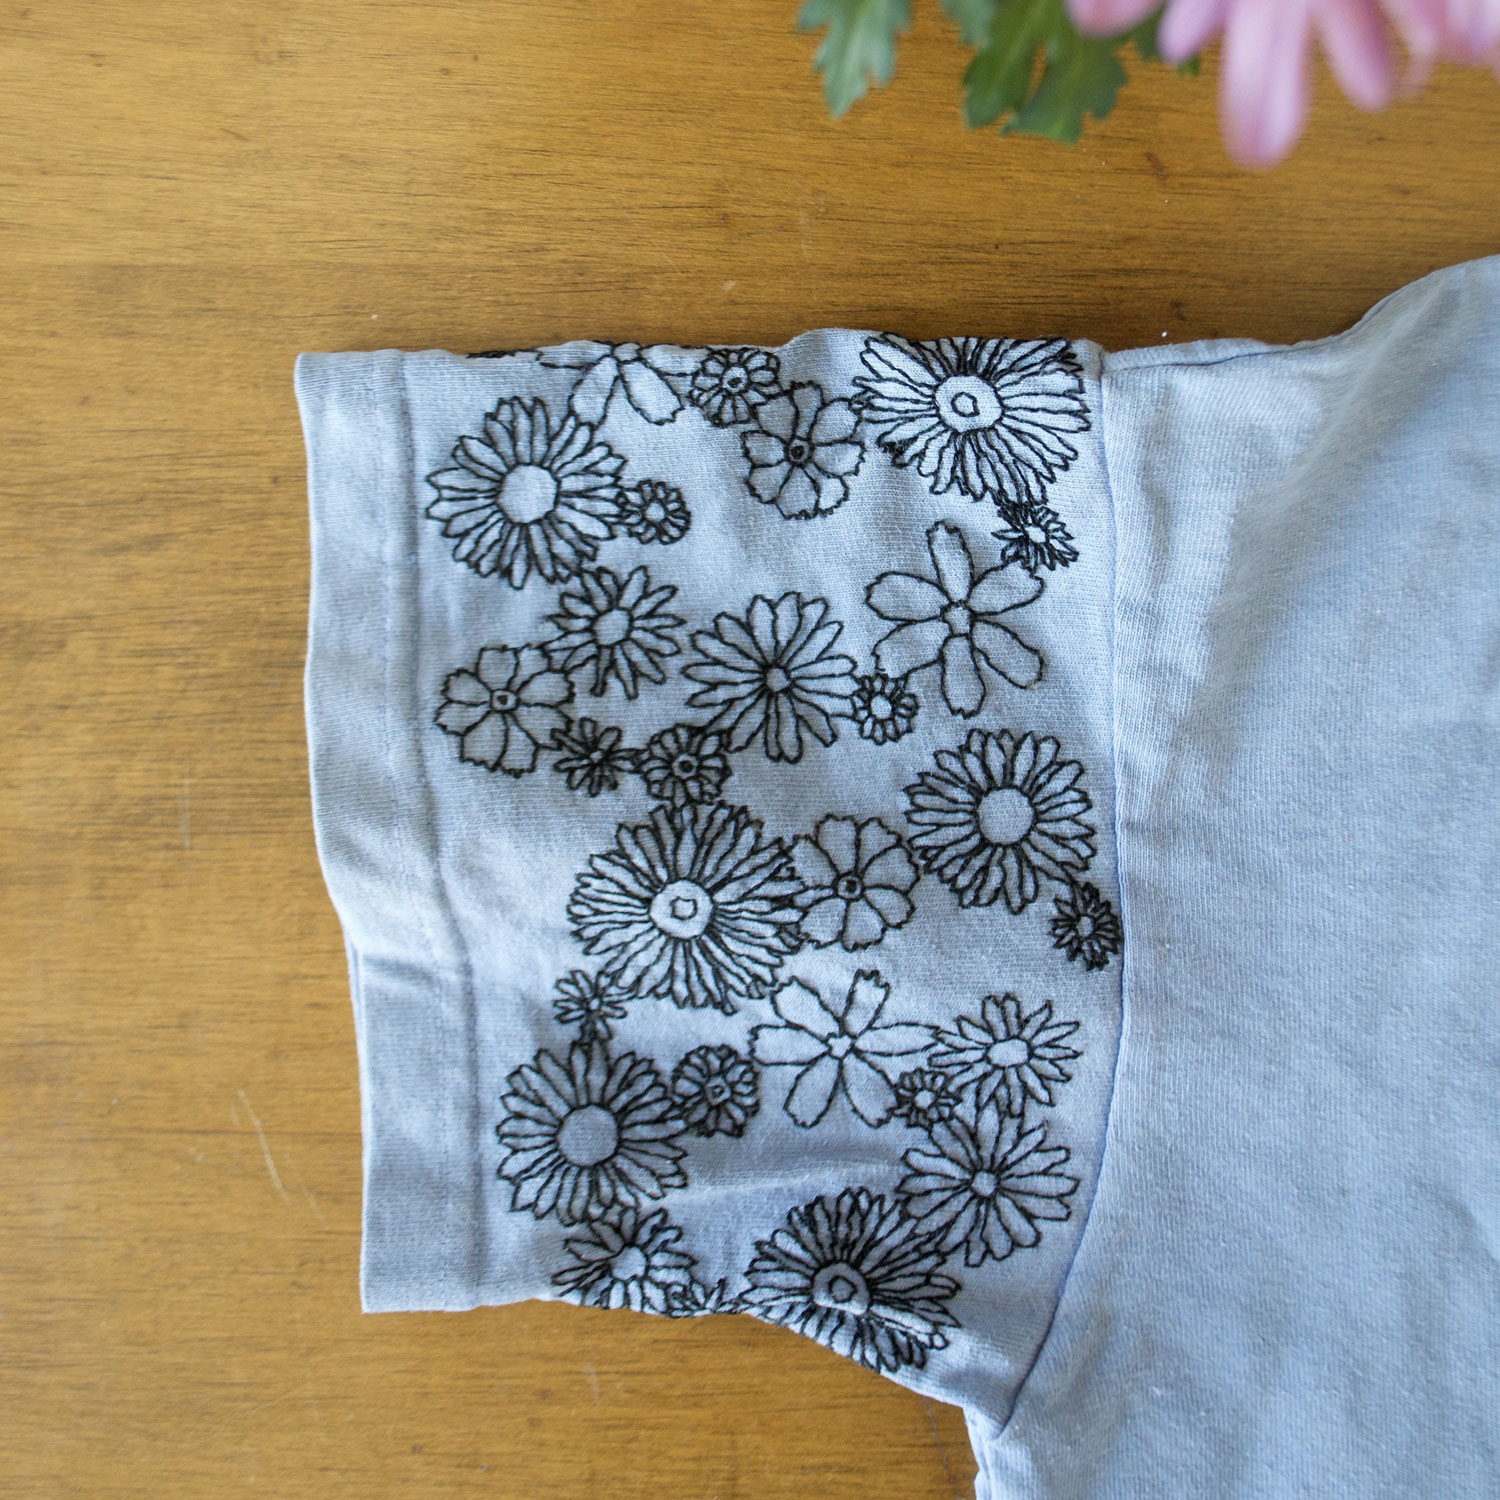 I completely finished the stitching on this sleeve and washed away the transfer paper.